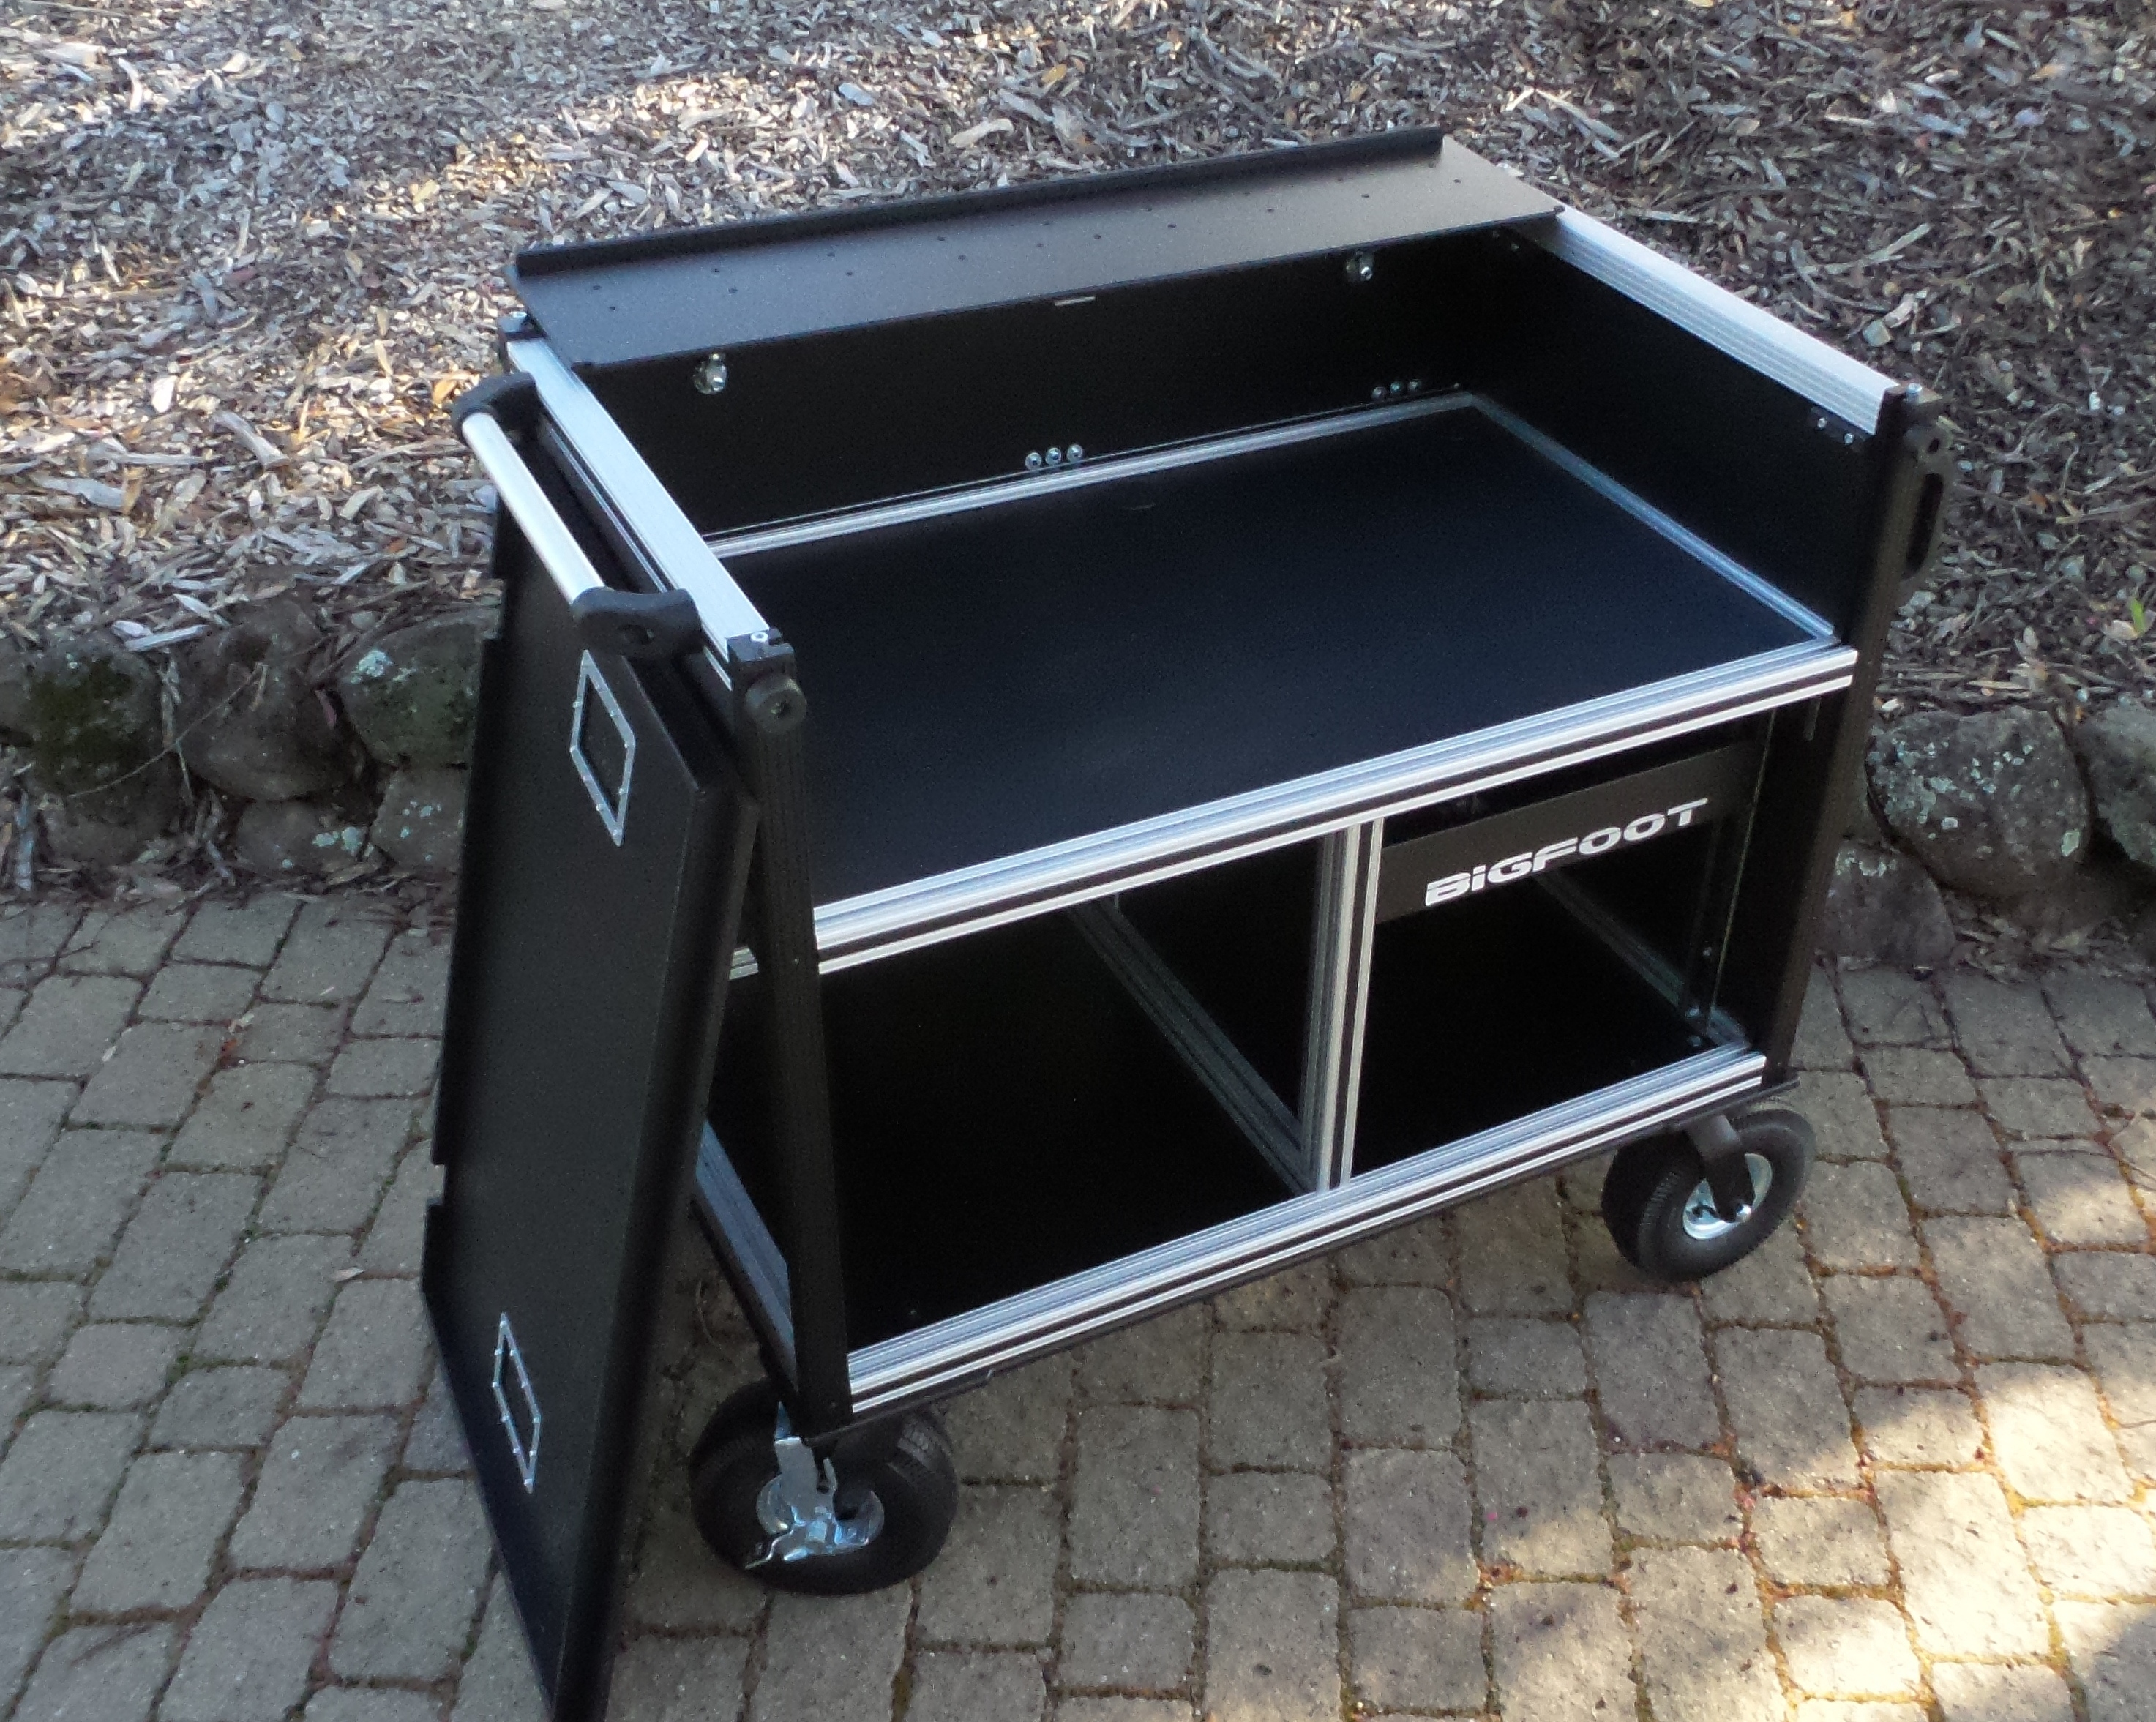 Bigfoot Large Audio Console System with large turf wheels, lid off